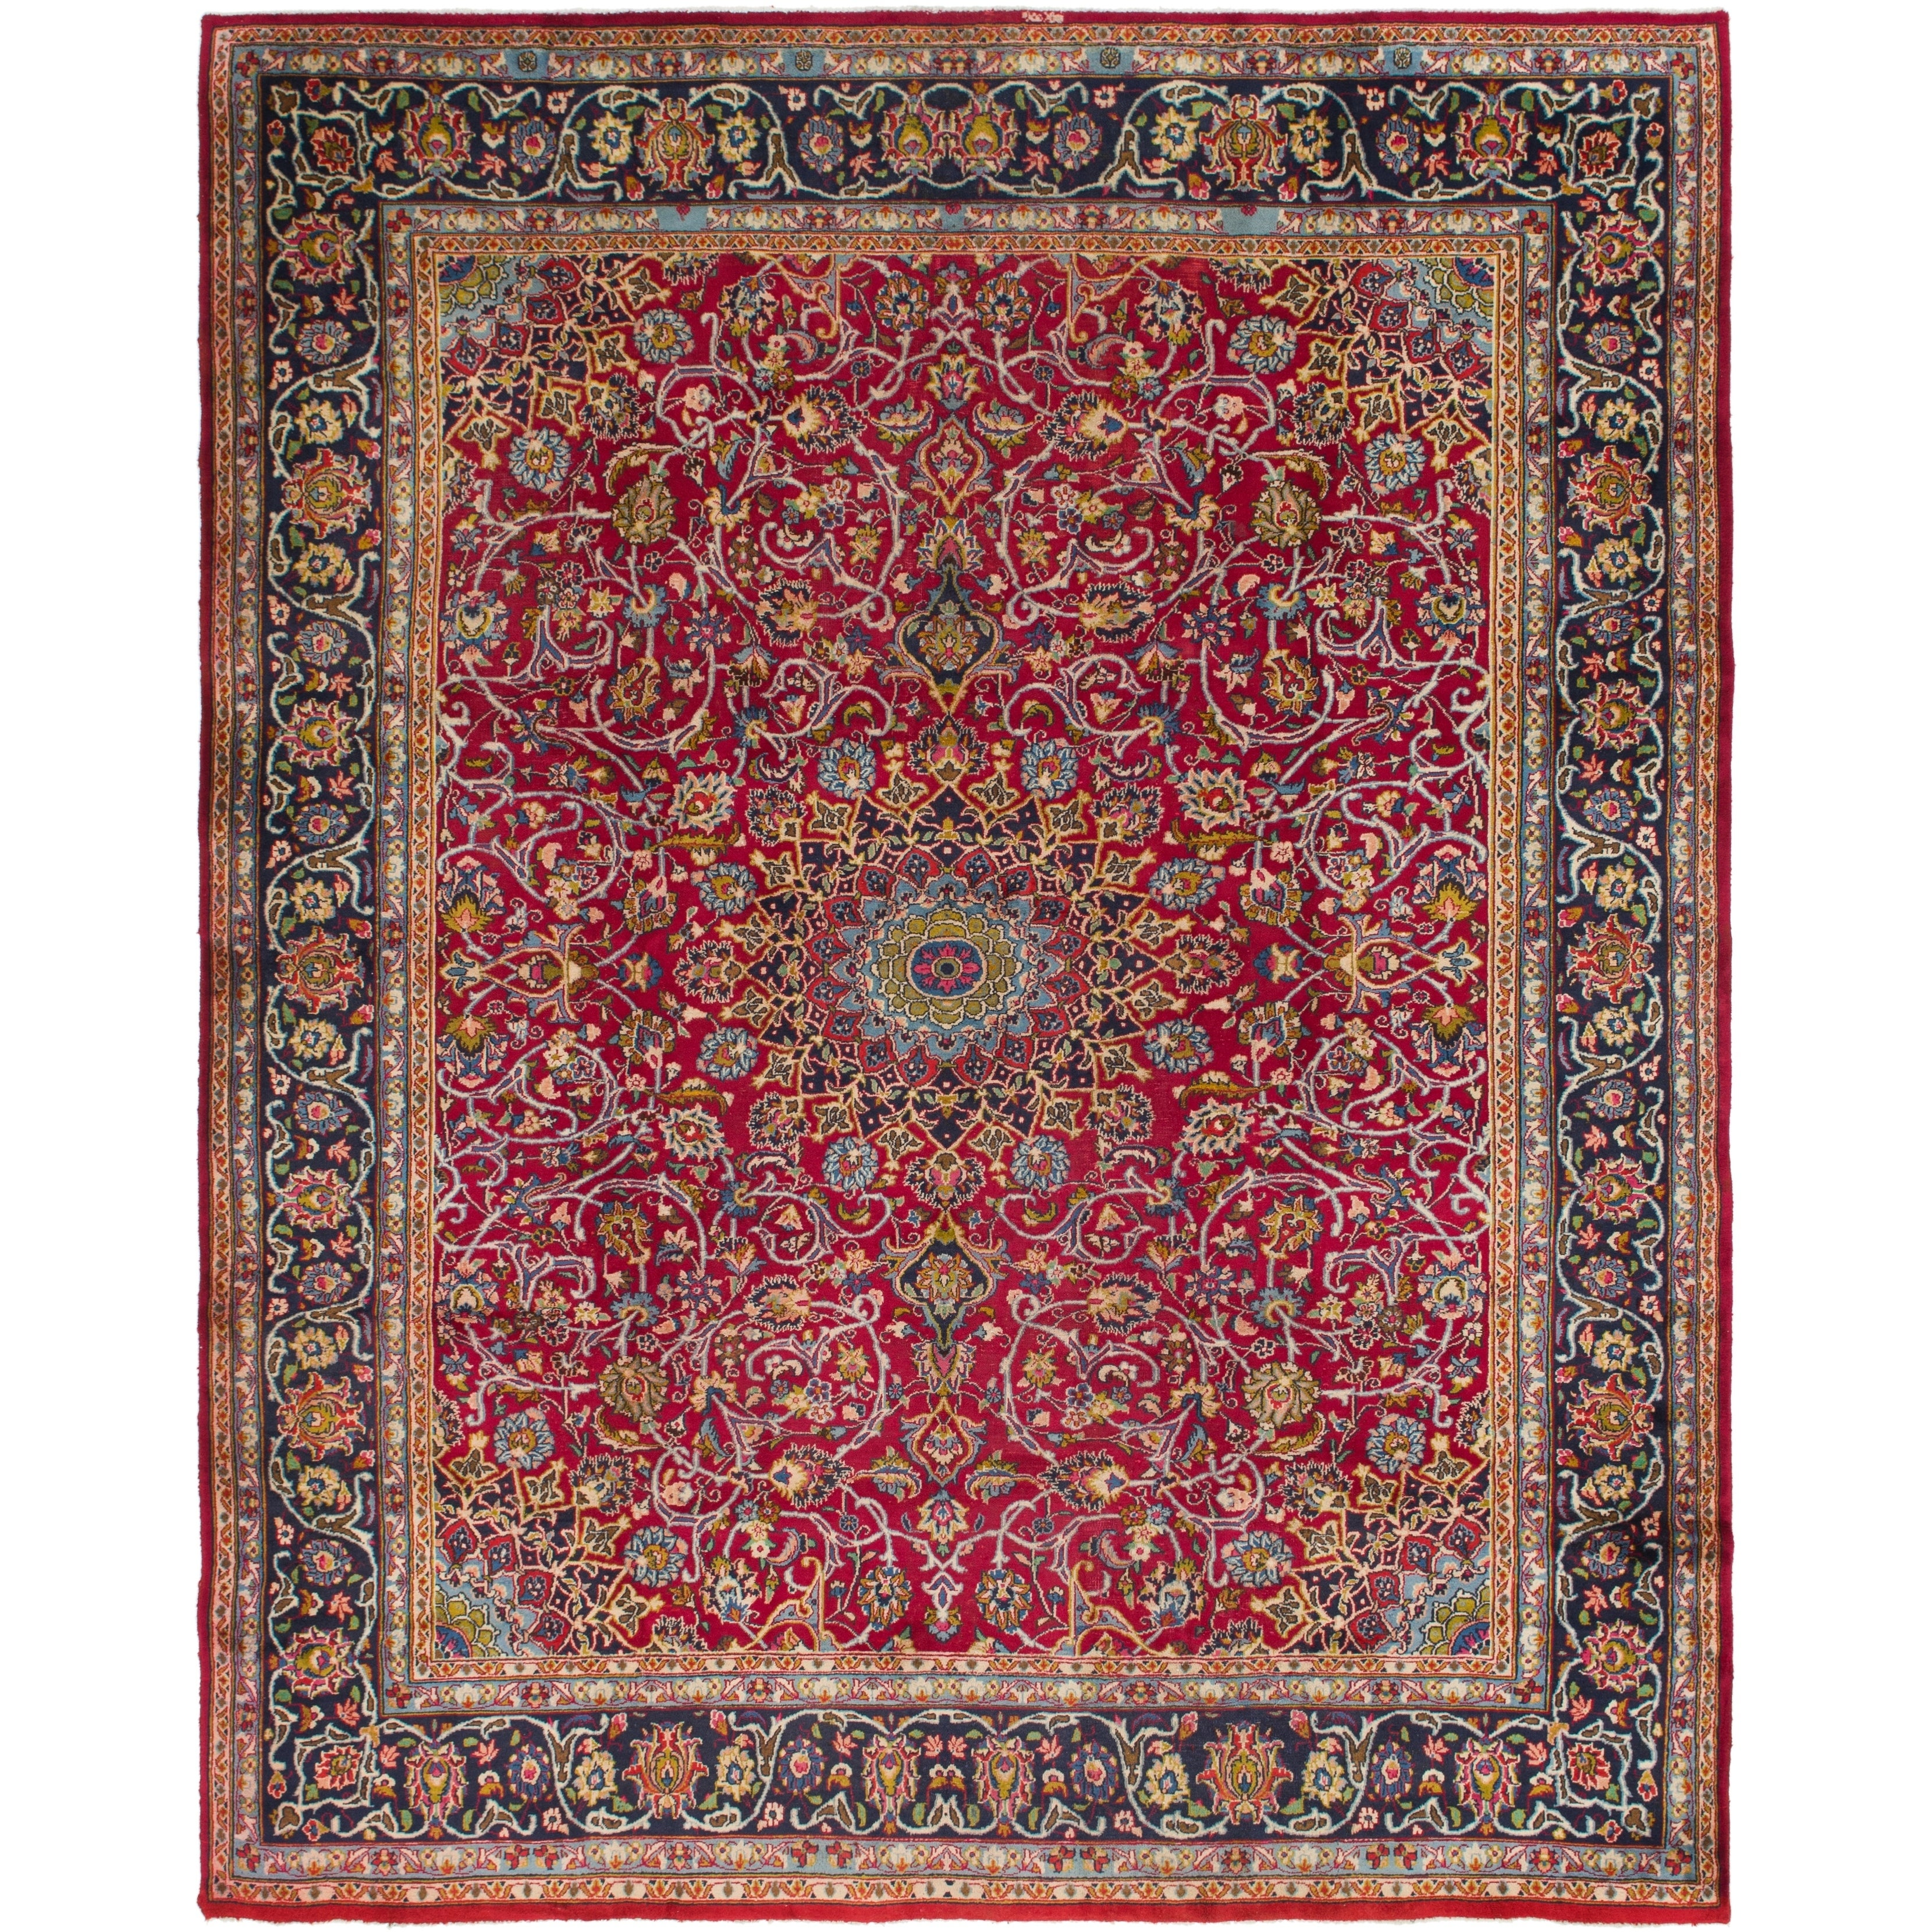 Hand Knotted Kashmar Semi Antique Wool Area Rug - 9 7 x 12 2 (Red - 9 7 x 12 2)